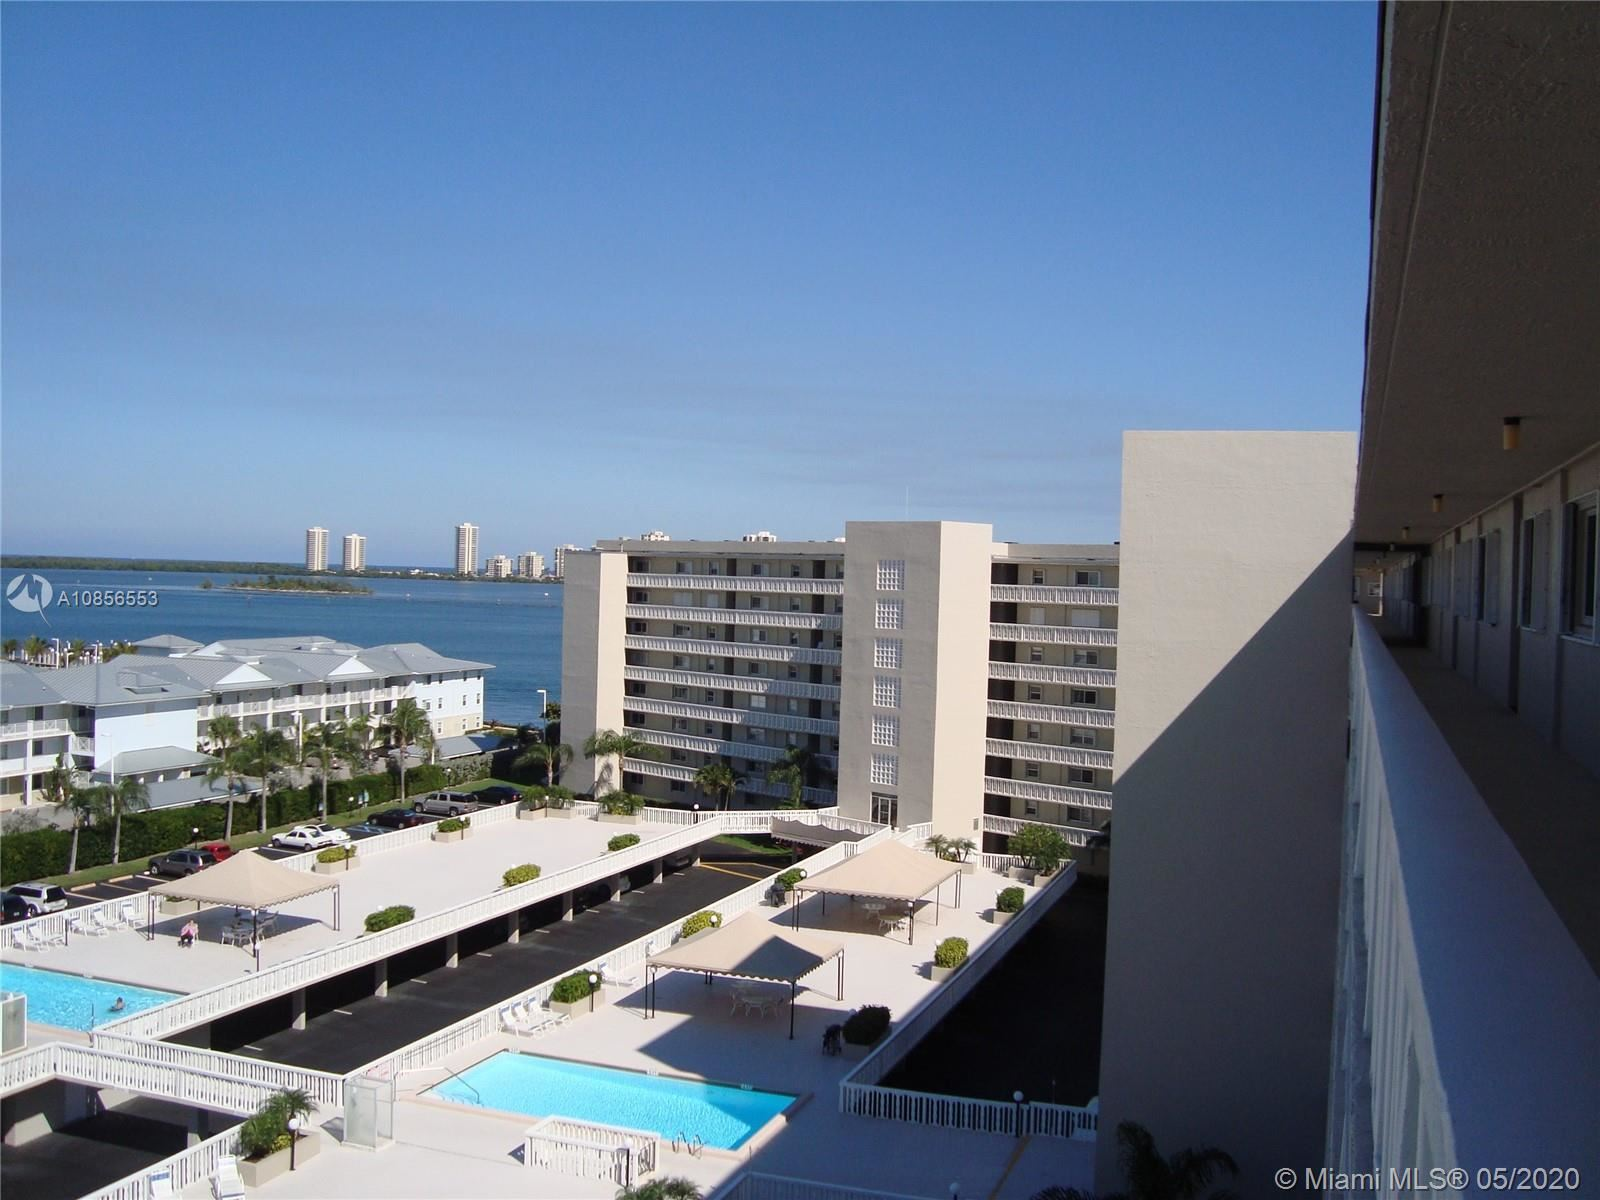 801 Lake Shore Dr #308, Lake Park, FL 33403 - #: A10856553